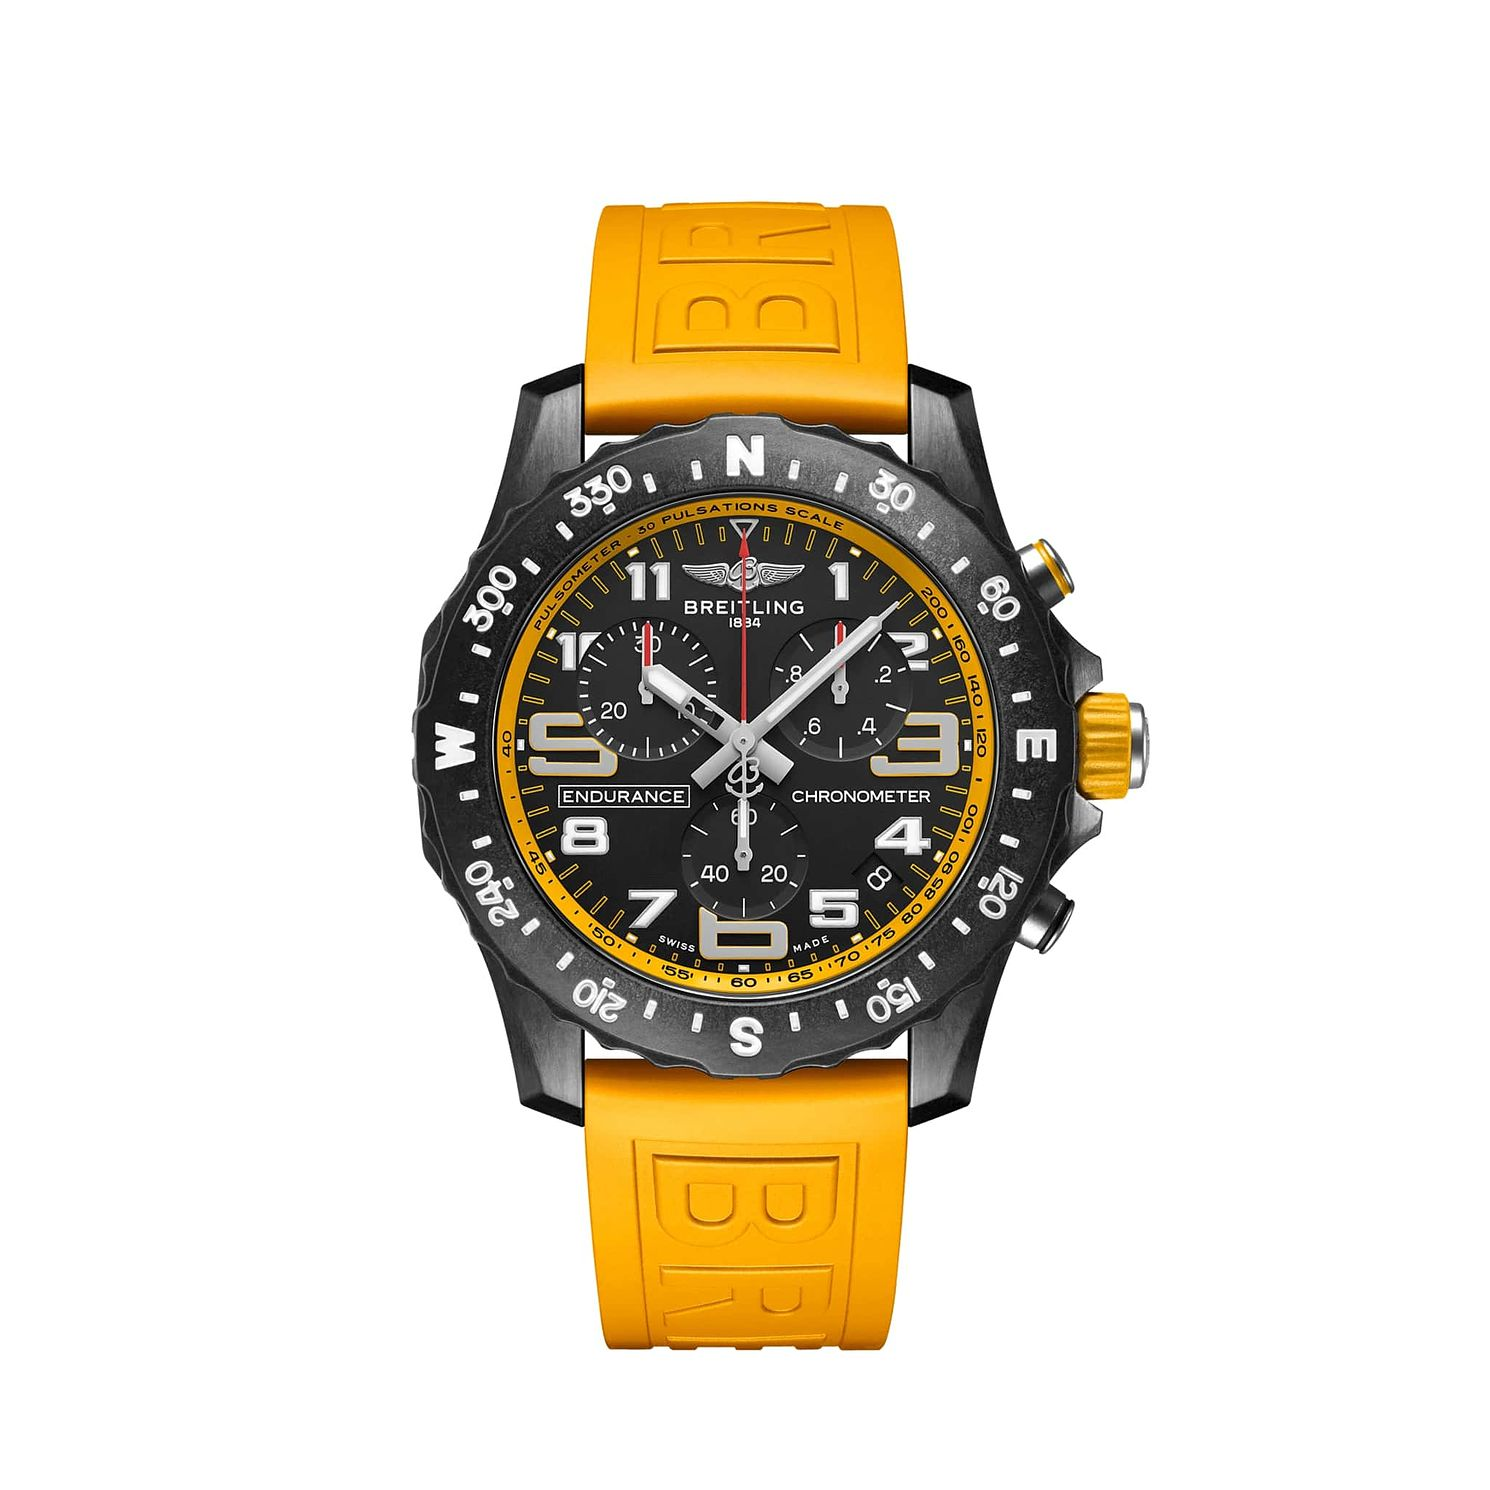 Breitling Endurance Pro Chrono Yellow Rubber Strap Watch - Product number 1162802